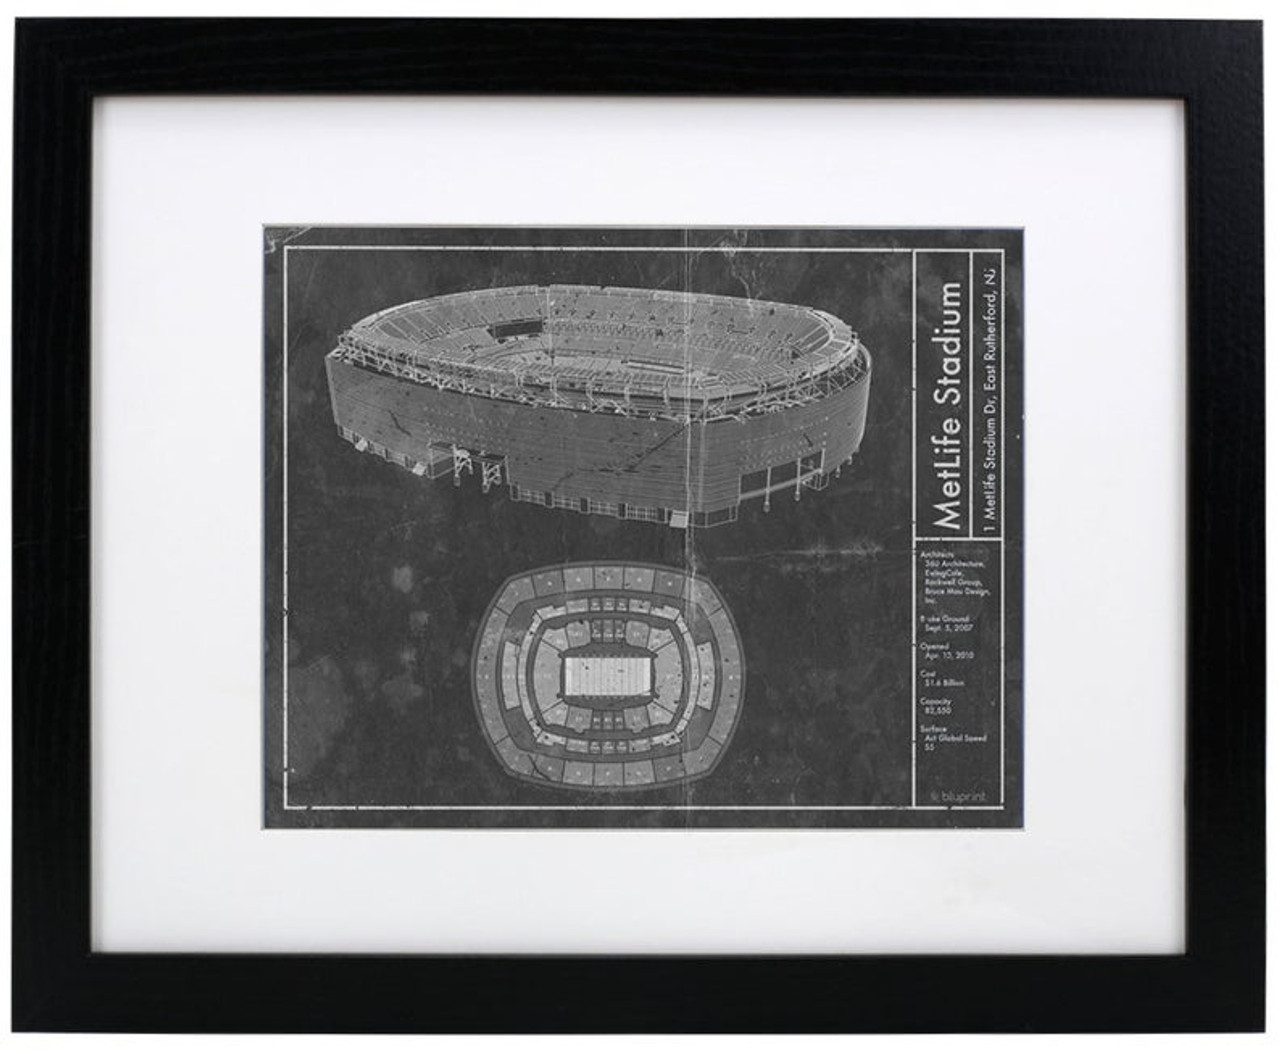 MetLife Stadium - New York Giants/Jets Blueprint Poster